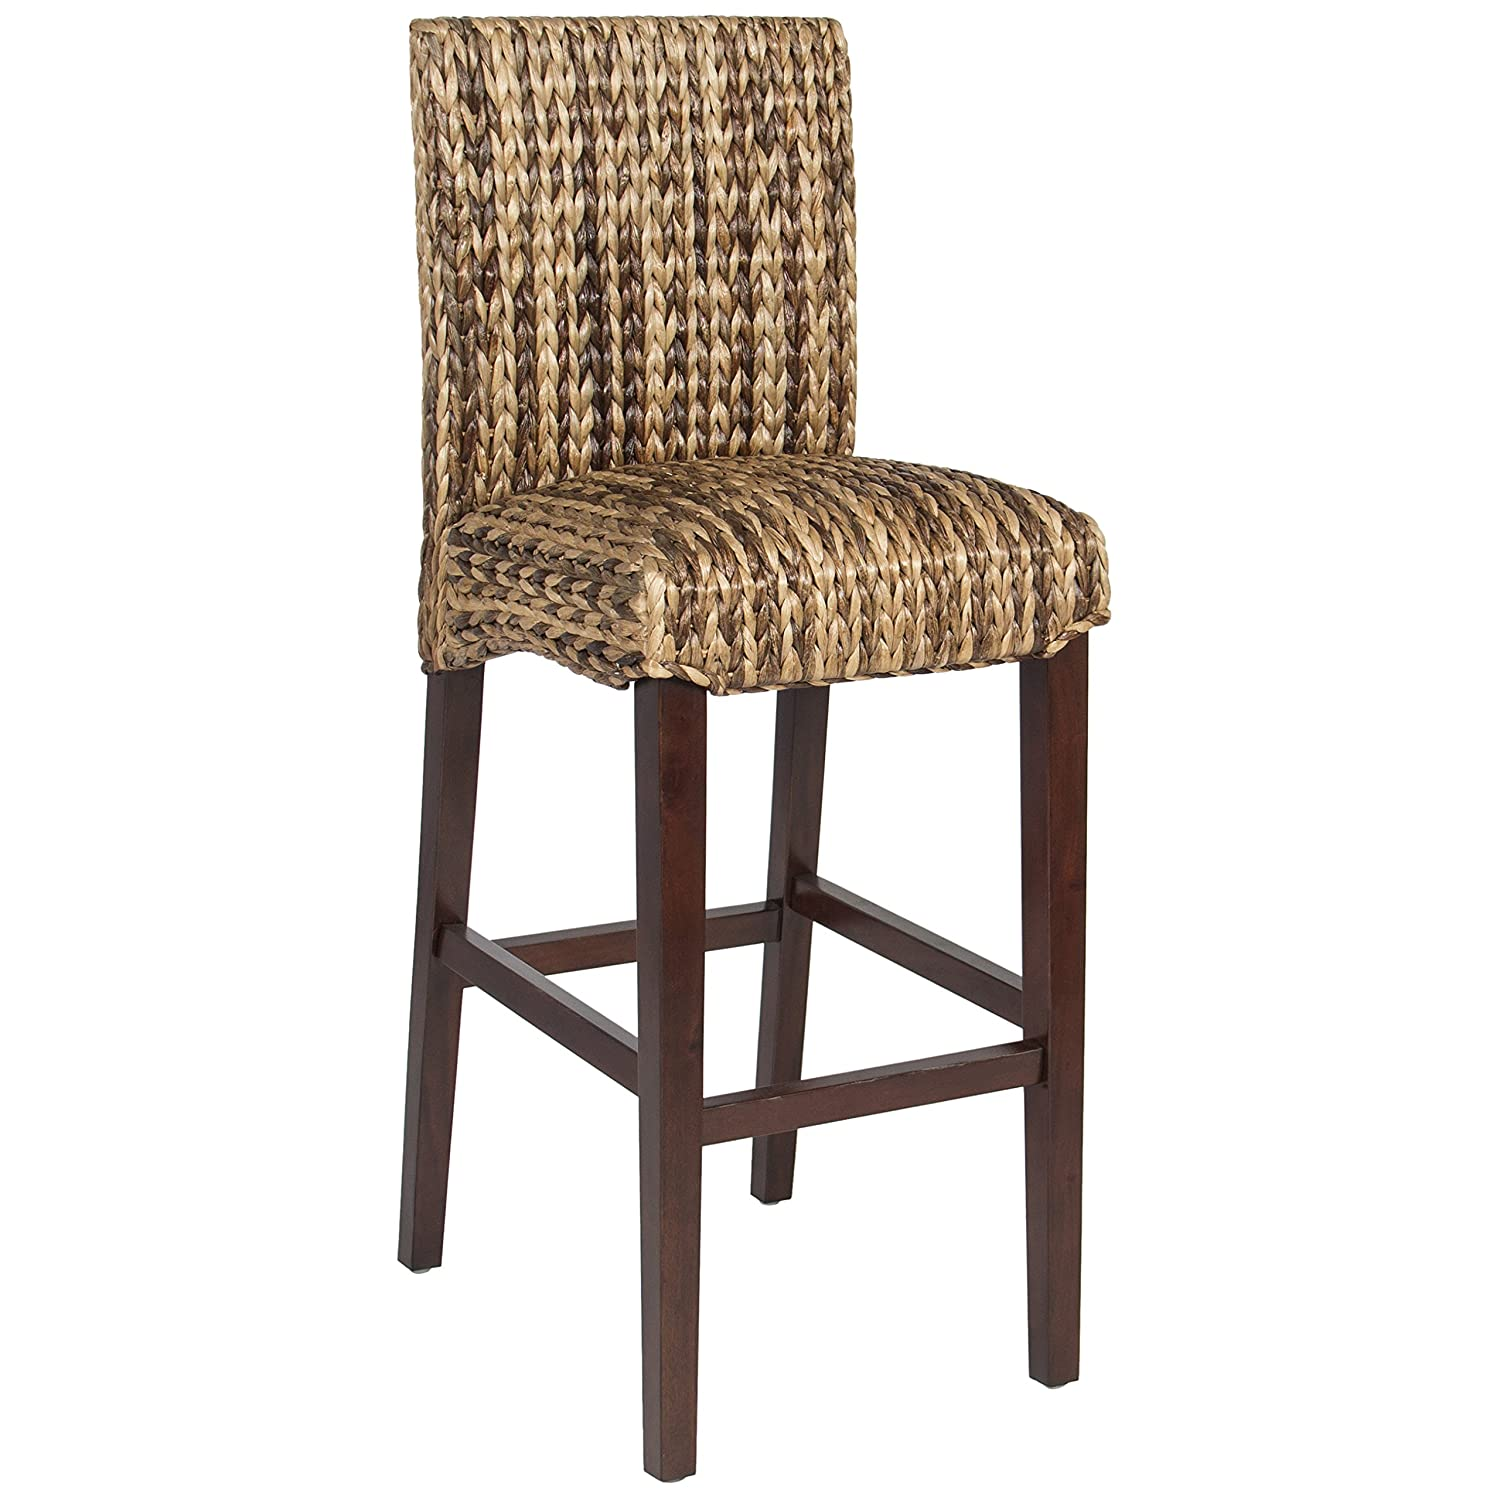 Rattan Wicker Bar Stools Chairs Counter Seating